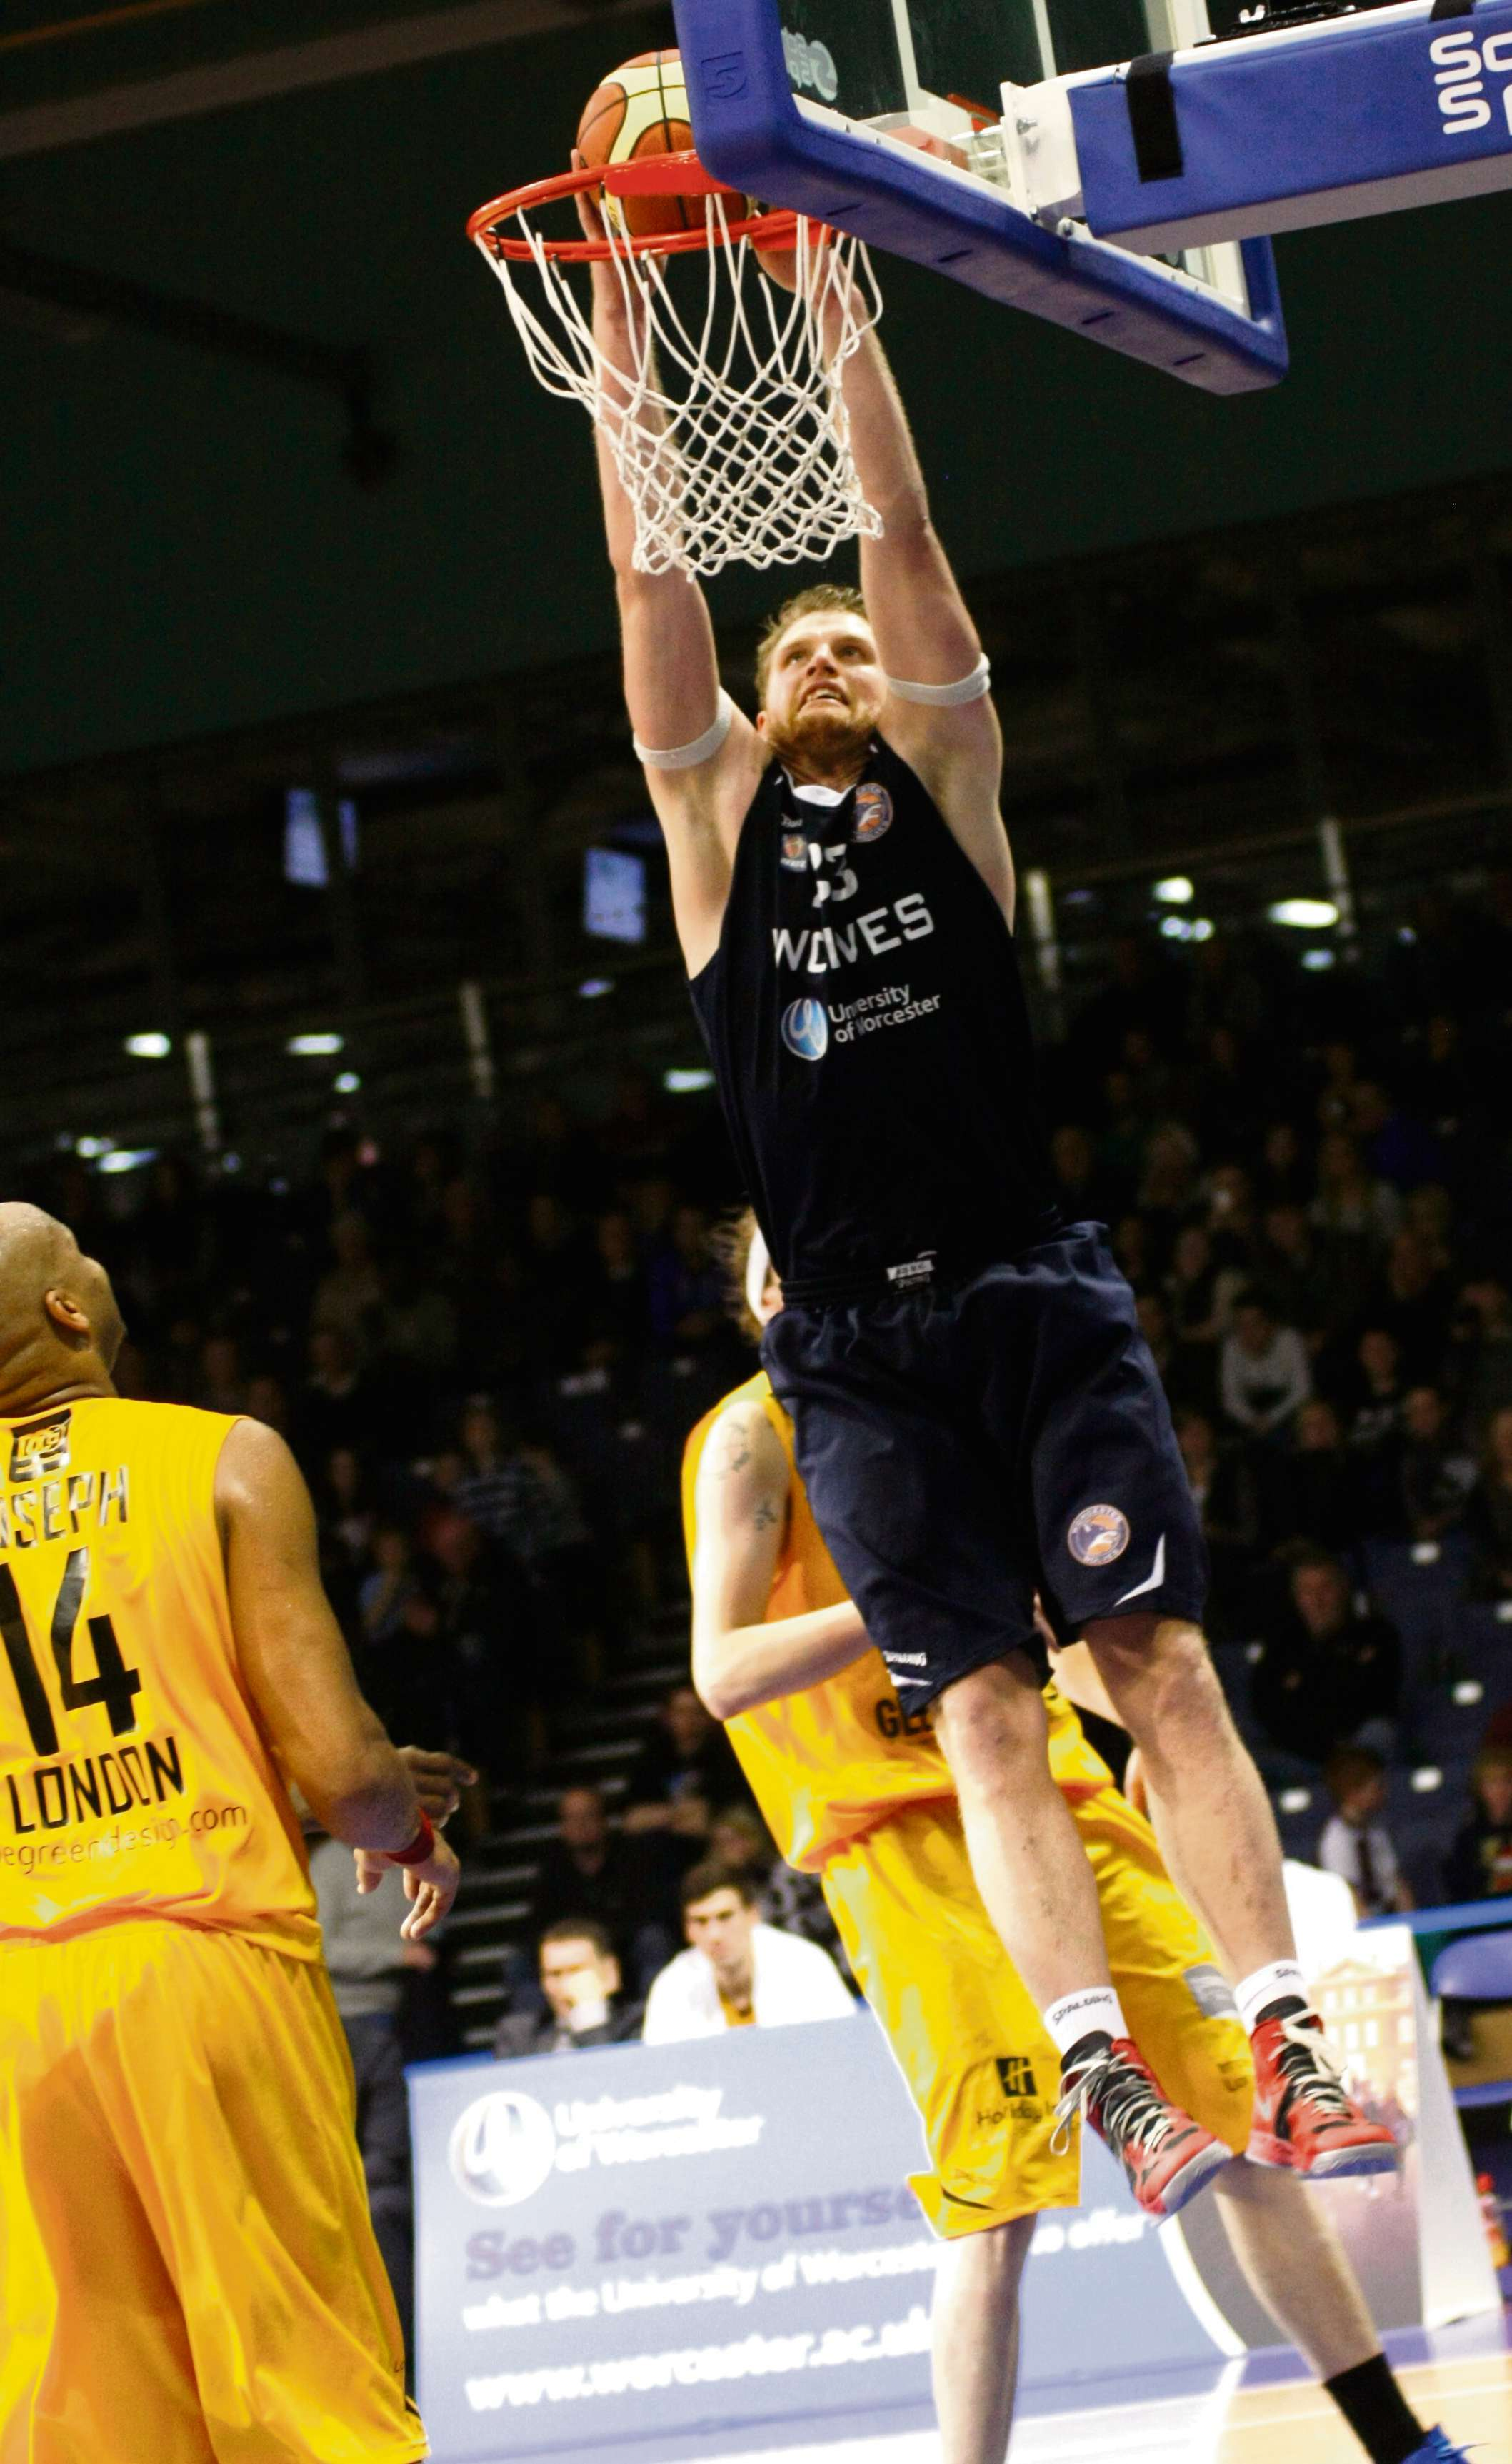 ANDREAS SCHREIBER: The Worcester Wolves centre will be facing his former club Plymouth Raiders on Saturday.